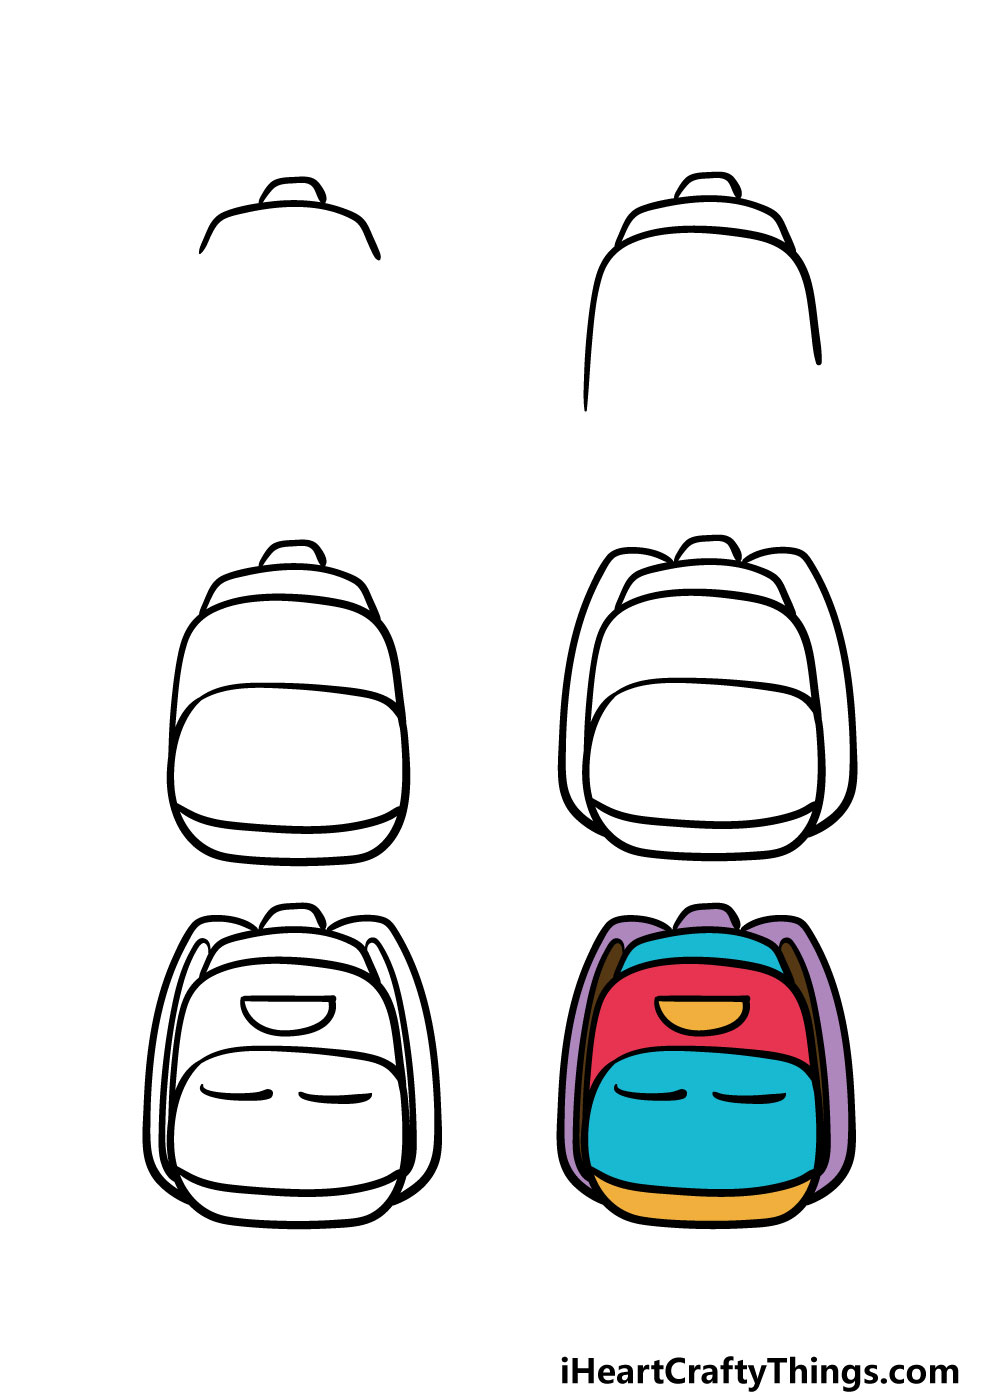 how to draw a backpack in 6 steps